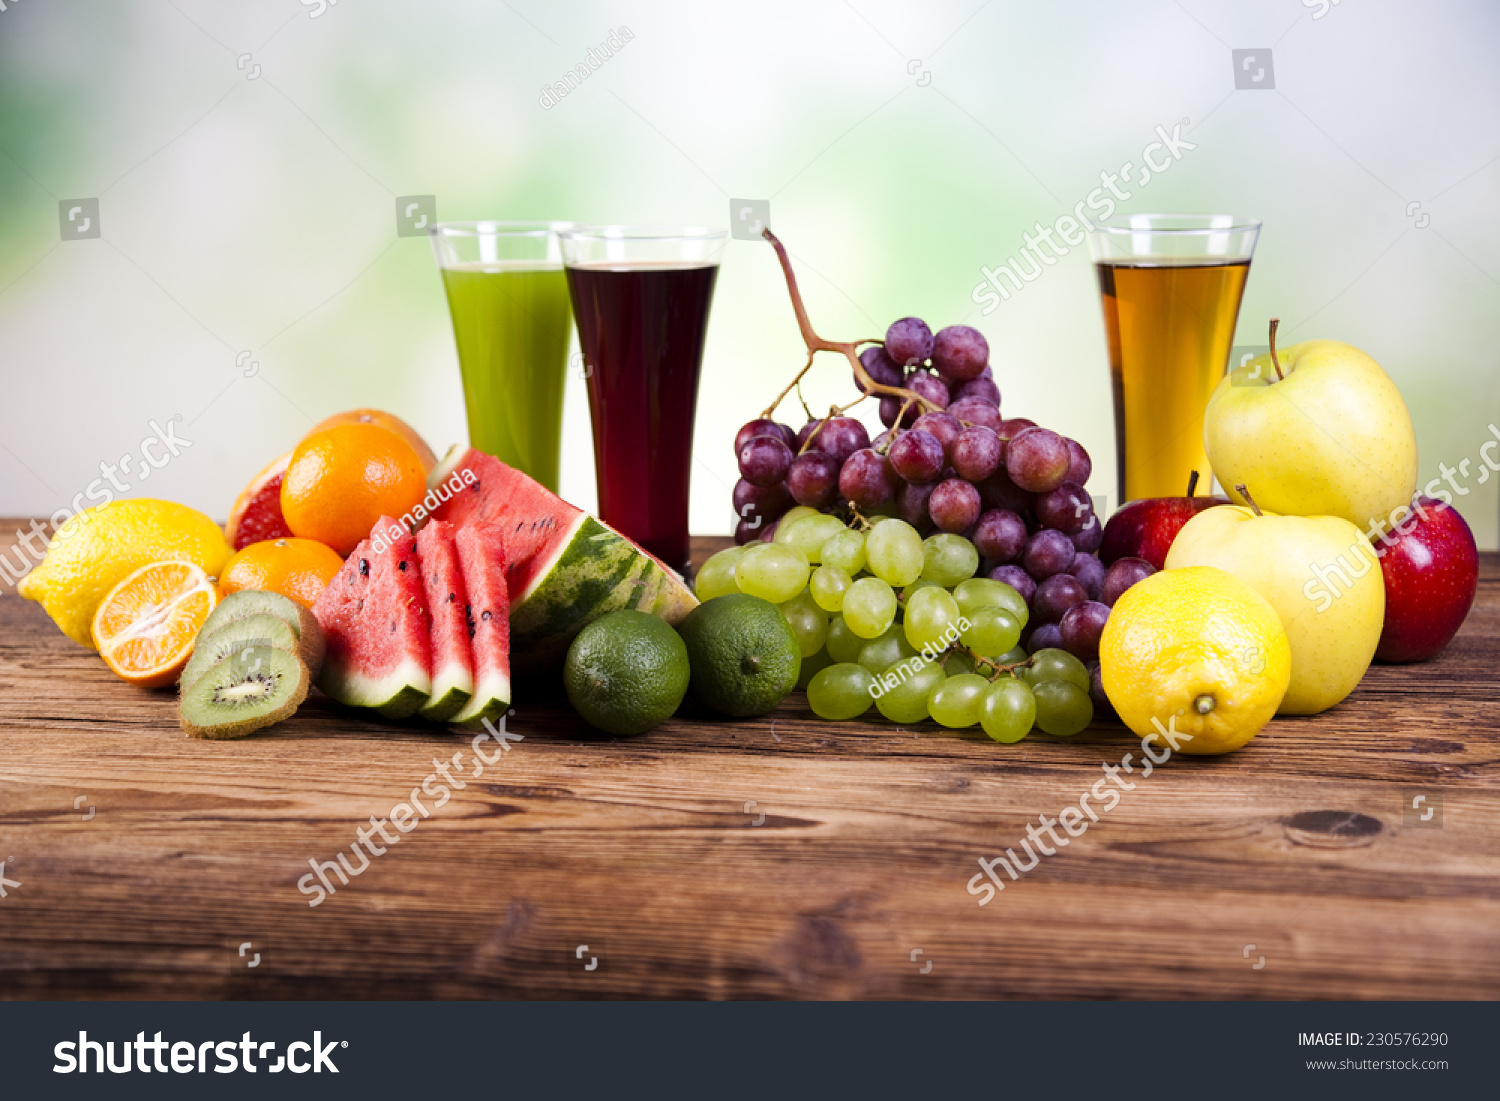 all fruits are fruit juices healthy